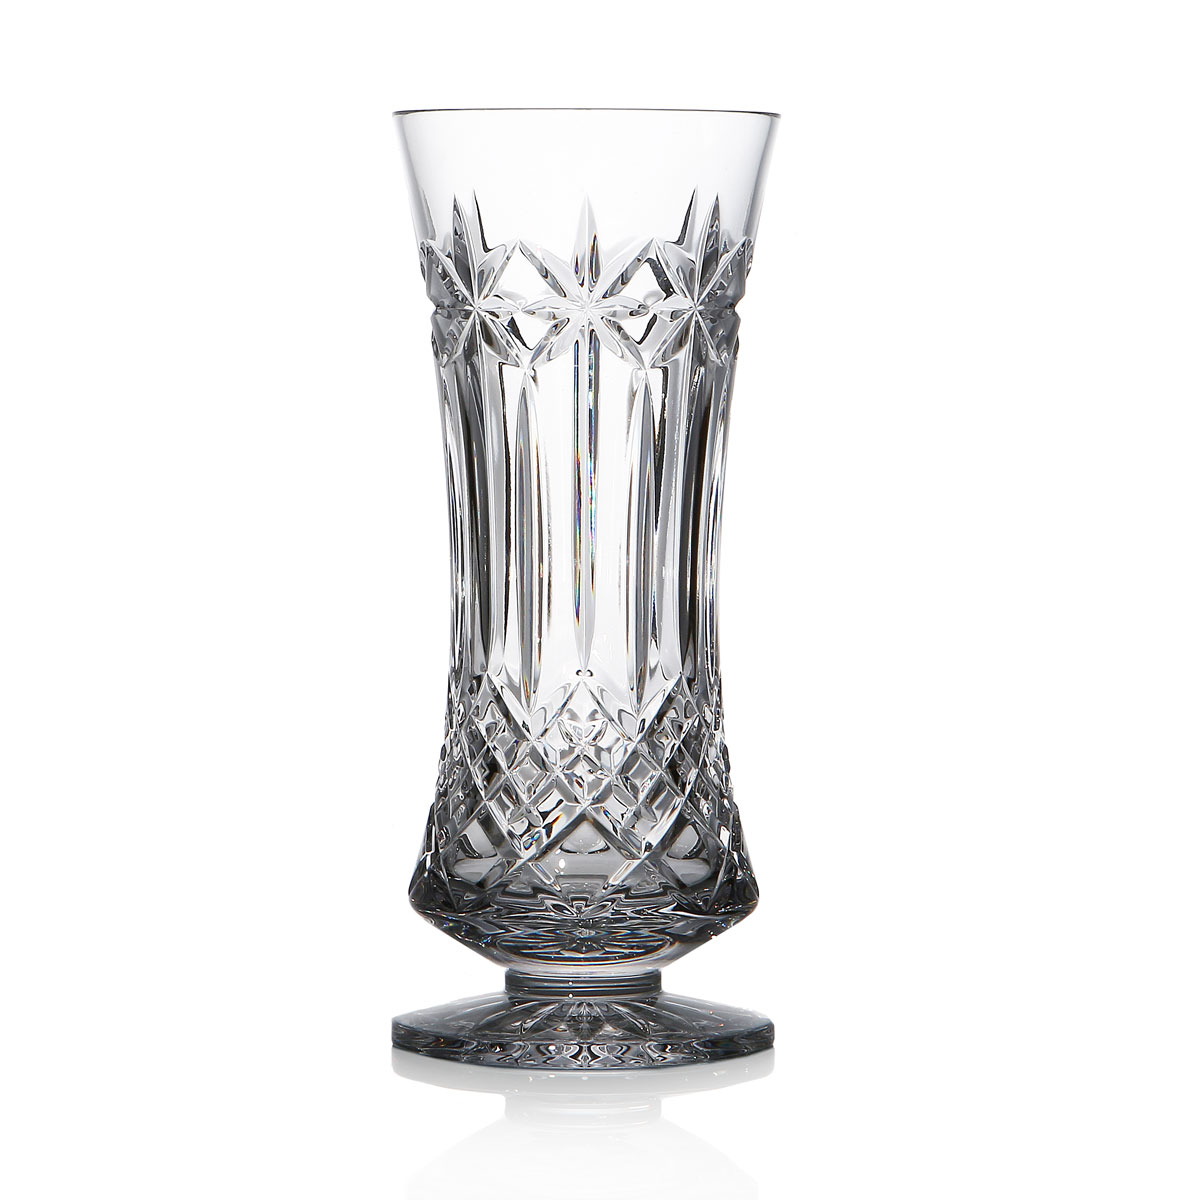 "Waterford Crystal Balmoral 7 1/2"" Footed Vase"